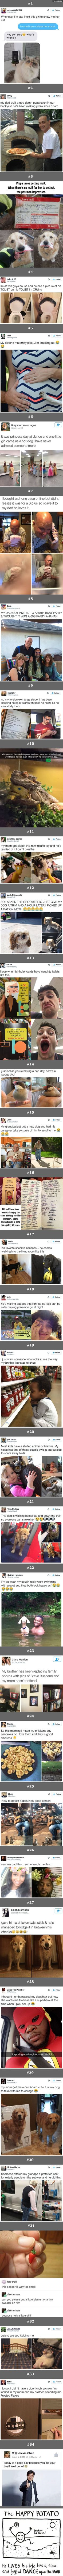 34 Pics To Make You Happier In Case You're Having A Bad Day - 9GAG